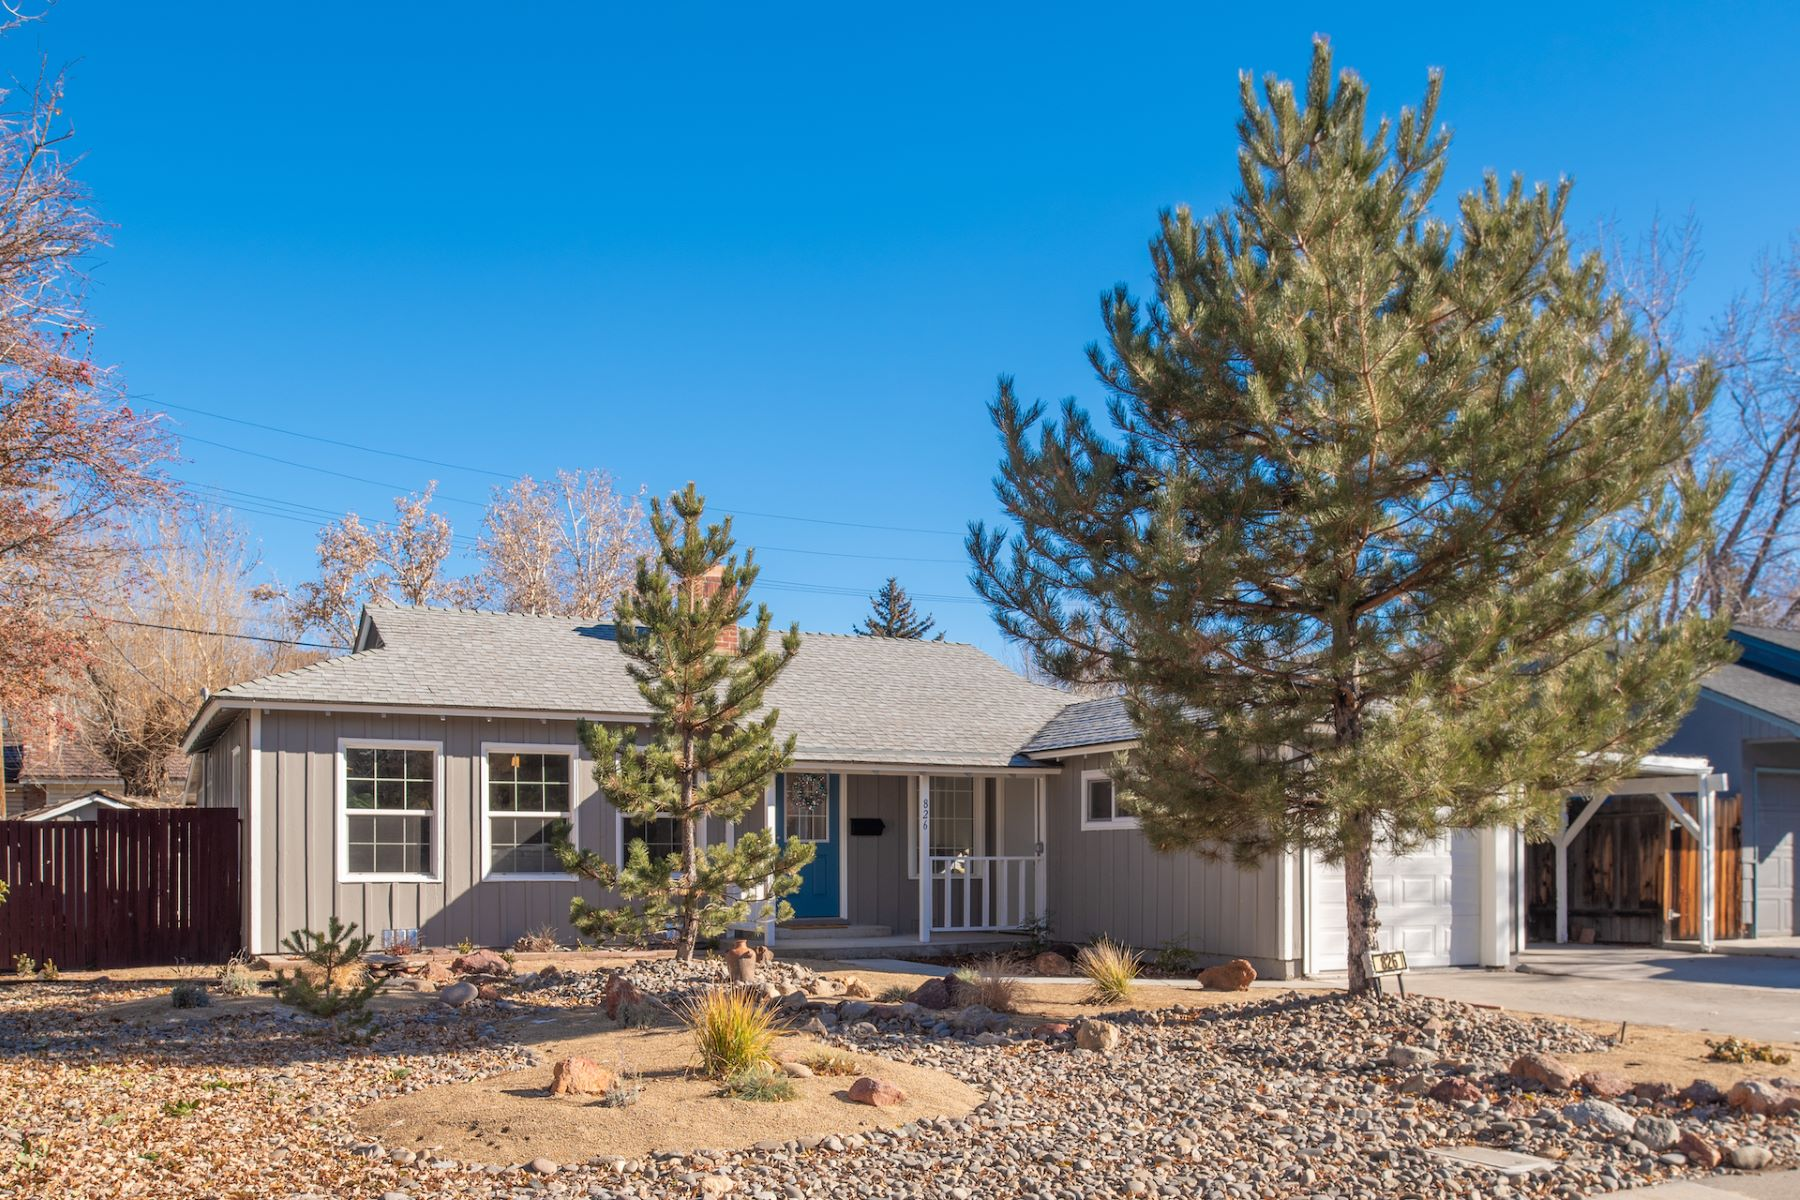 Single Family Home for Active at 826 Arbutus Street, Reno, Nevada 89509 826 Arbutus Street Reno, Nevada 89509 United States